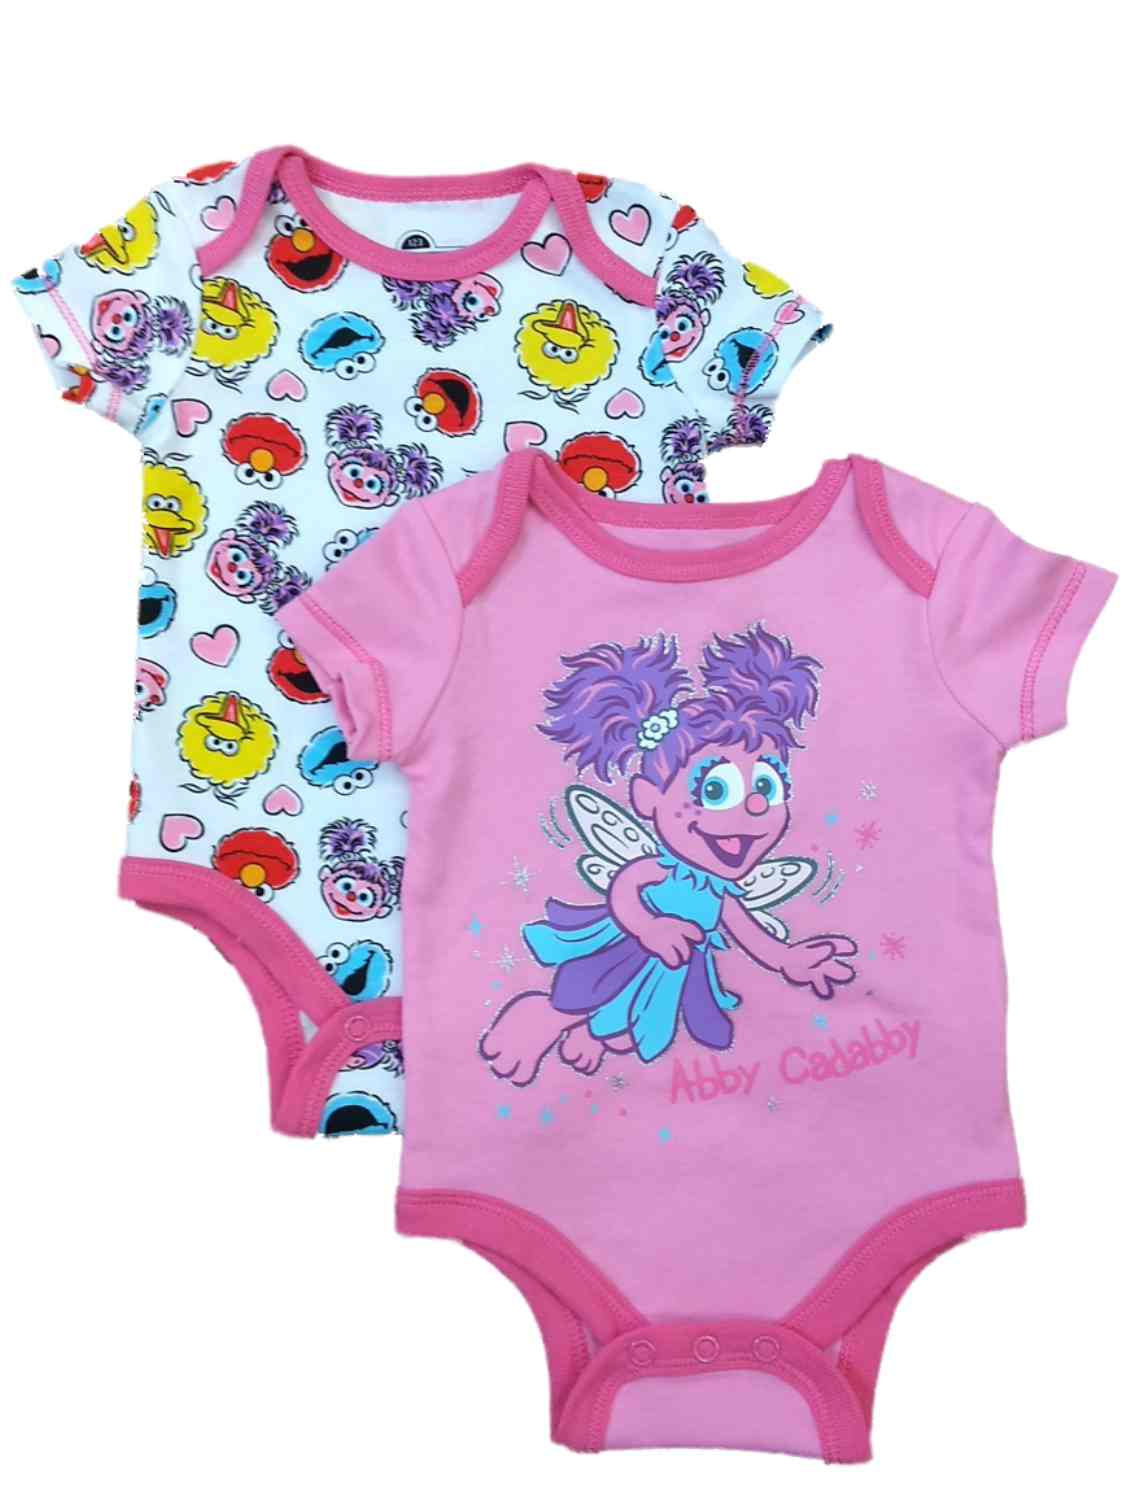 826545c9445a Dylan Abby Dylan Abby Baby Girl Two Piece Shirt And